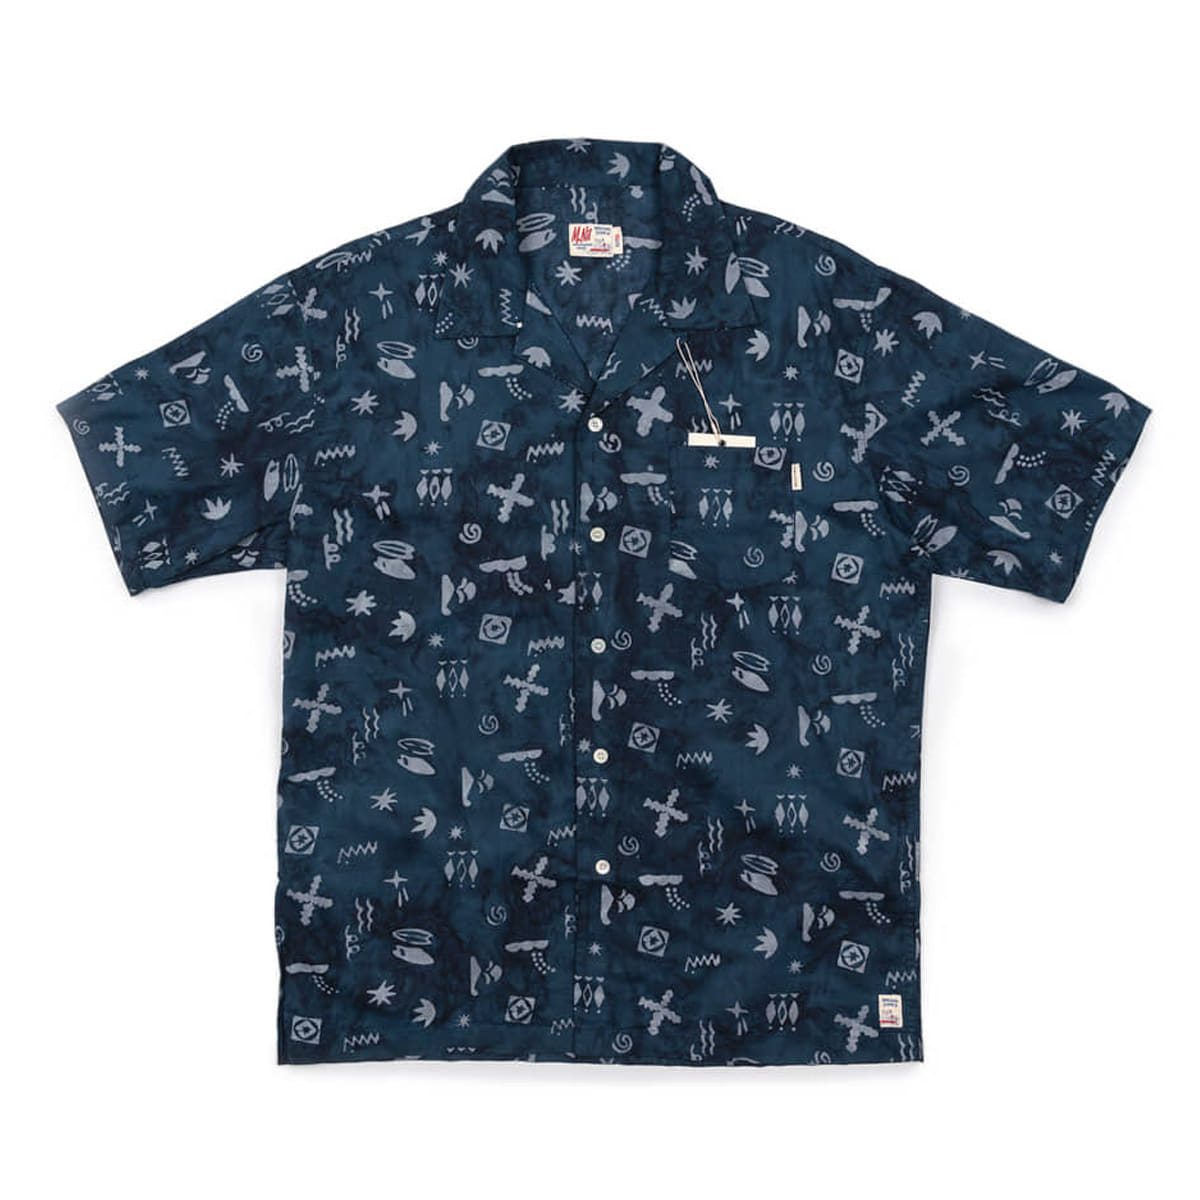 [M.NII] Matt And Mel x M.Nii HAND PRINTED ALOHA SHIRTS 'NAVY'